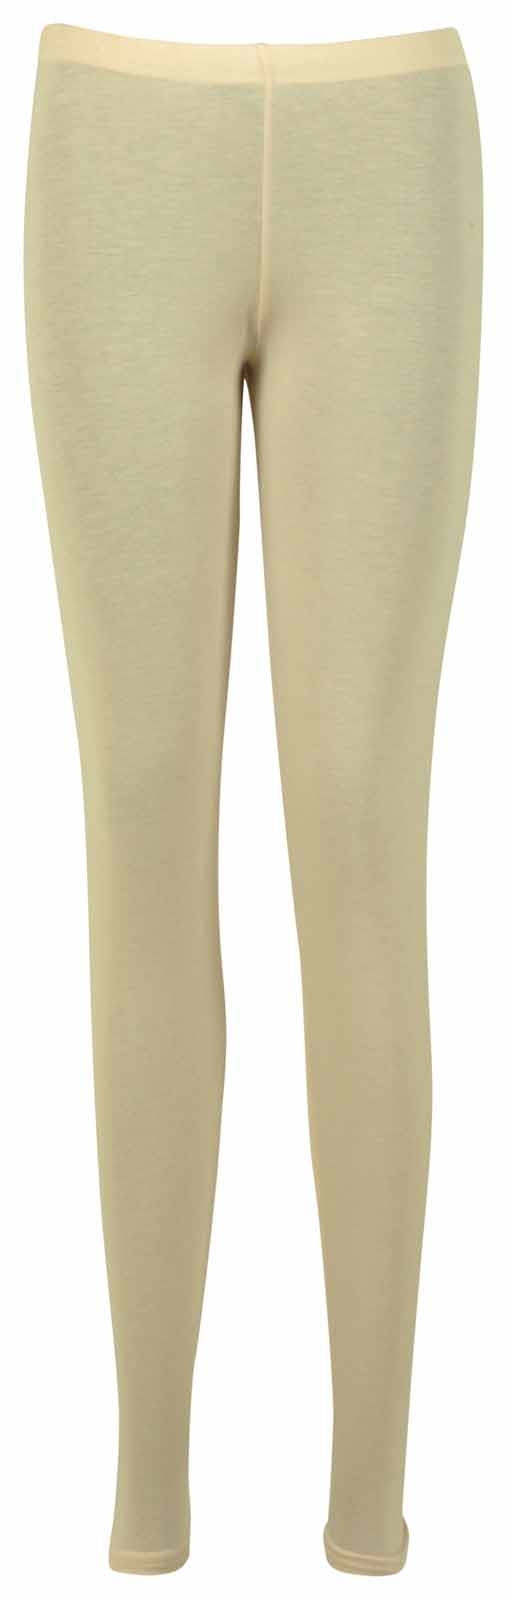 WOMENS-NEW-PLUS-SIZE-STRETCH-TROUSERS-LADIES-PLAIN-ELASTICATED-LONG-LEGGINGS